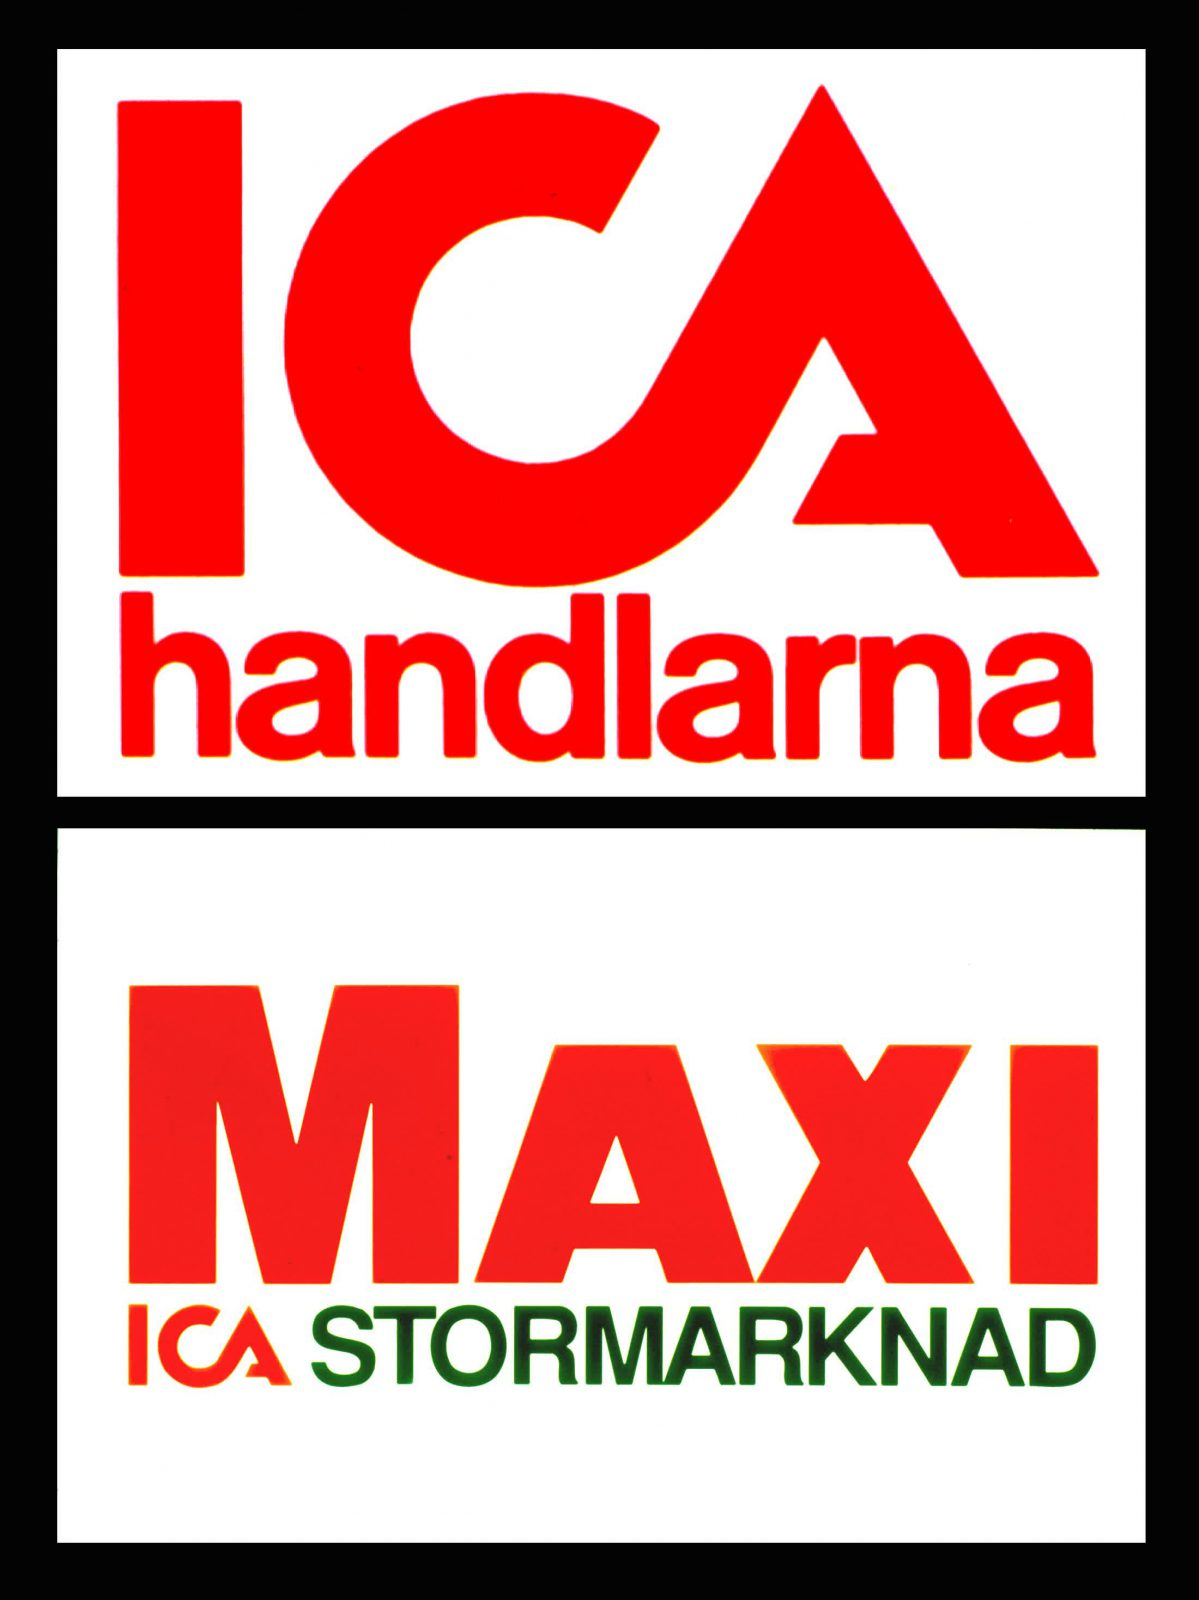 ica maxi tornby